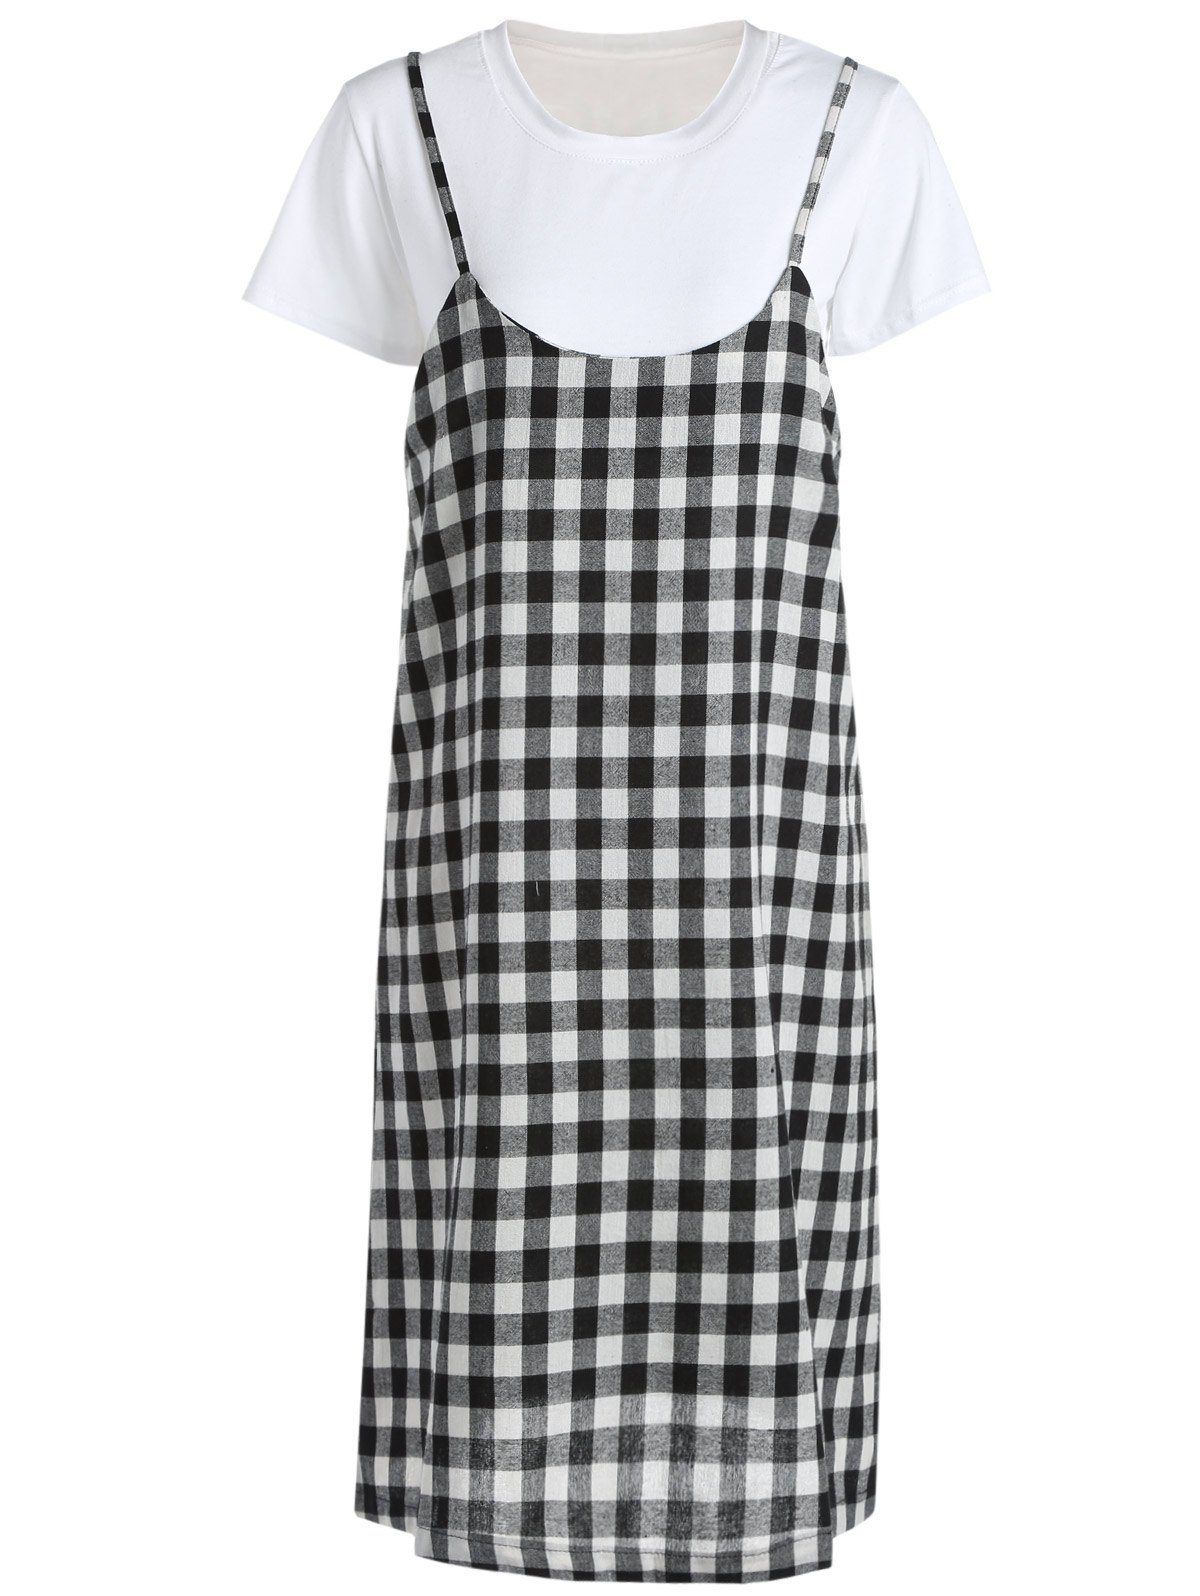 Casual Women's Round Neck Short Sleeve T-Shirt and Checkered Dress Set - WHITE/BLACK ONE SIZE(FIT SIZE XS TO M)